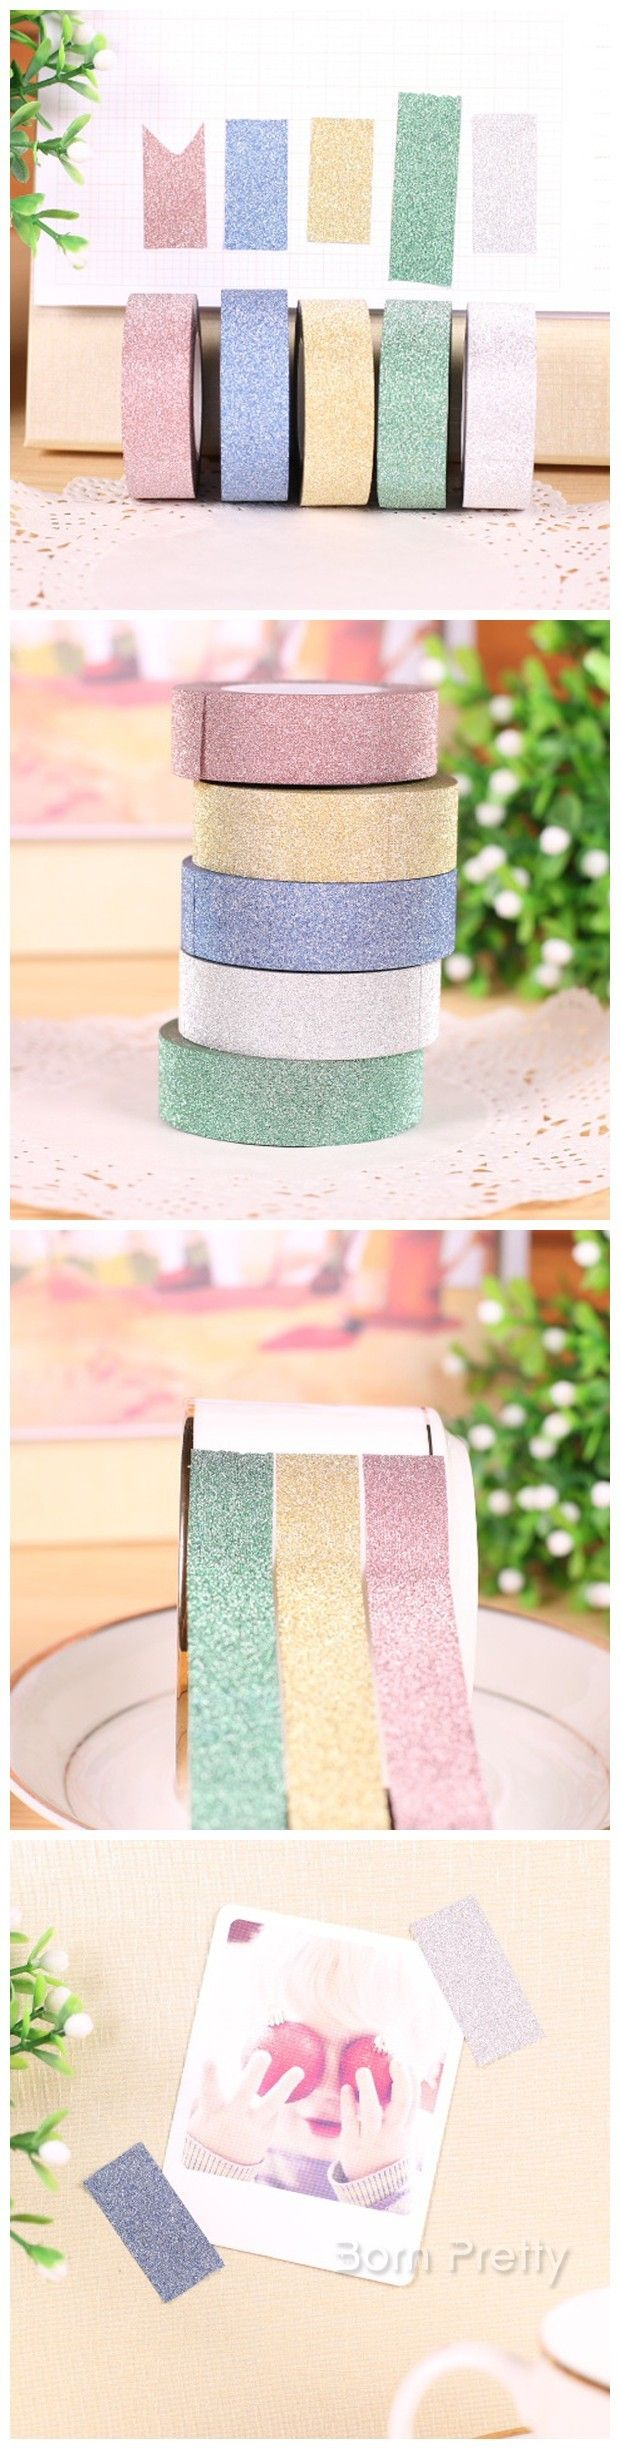 $2.45 Colorful Glitter Powder Adhesive Tape Flash Decoration Adhesive Tape - BornPrettyStore.com Use code DUG10 to get 10% off!!